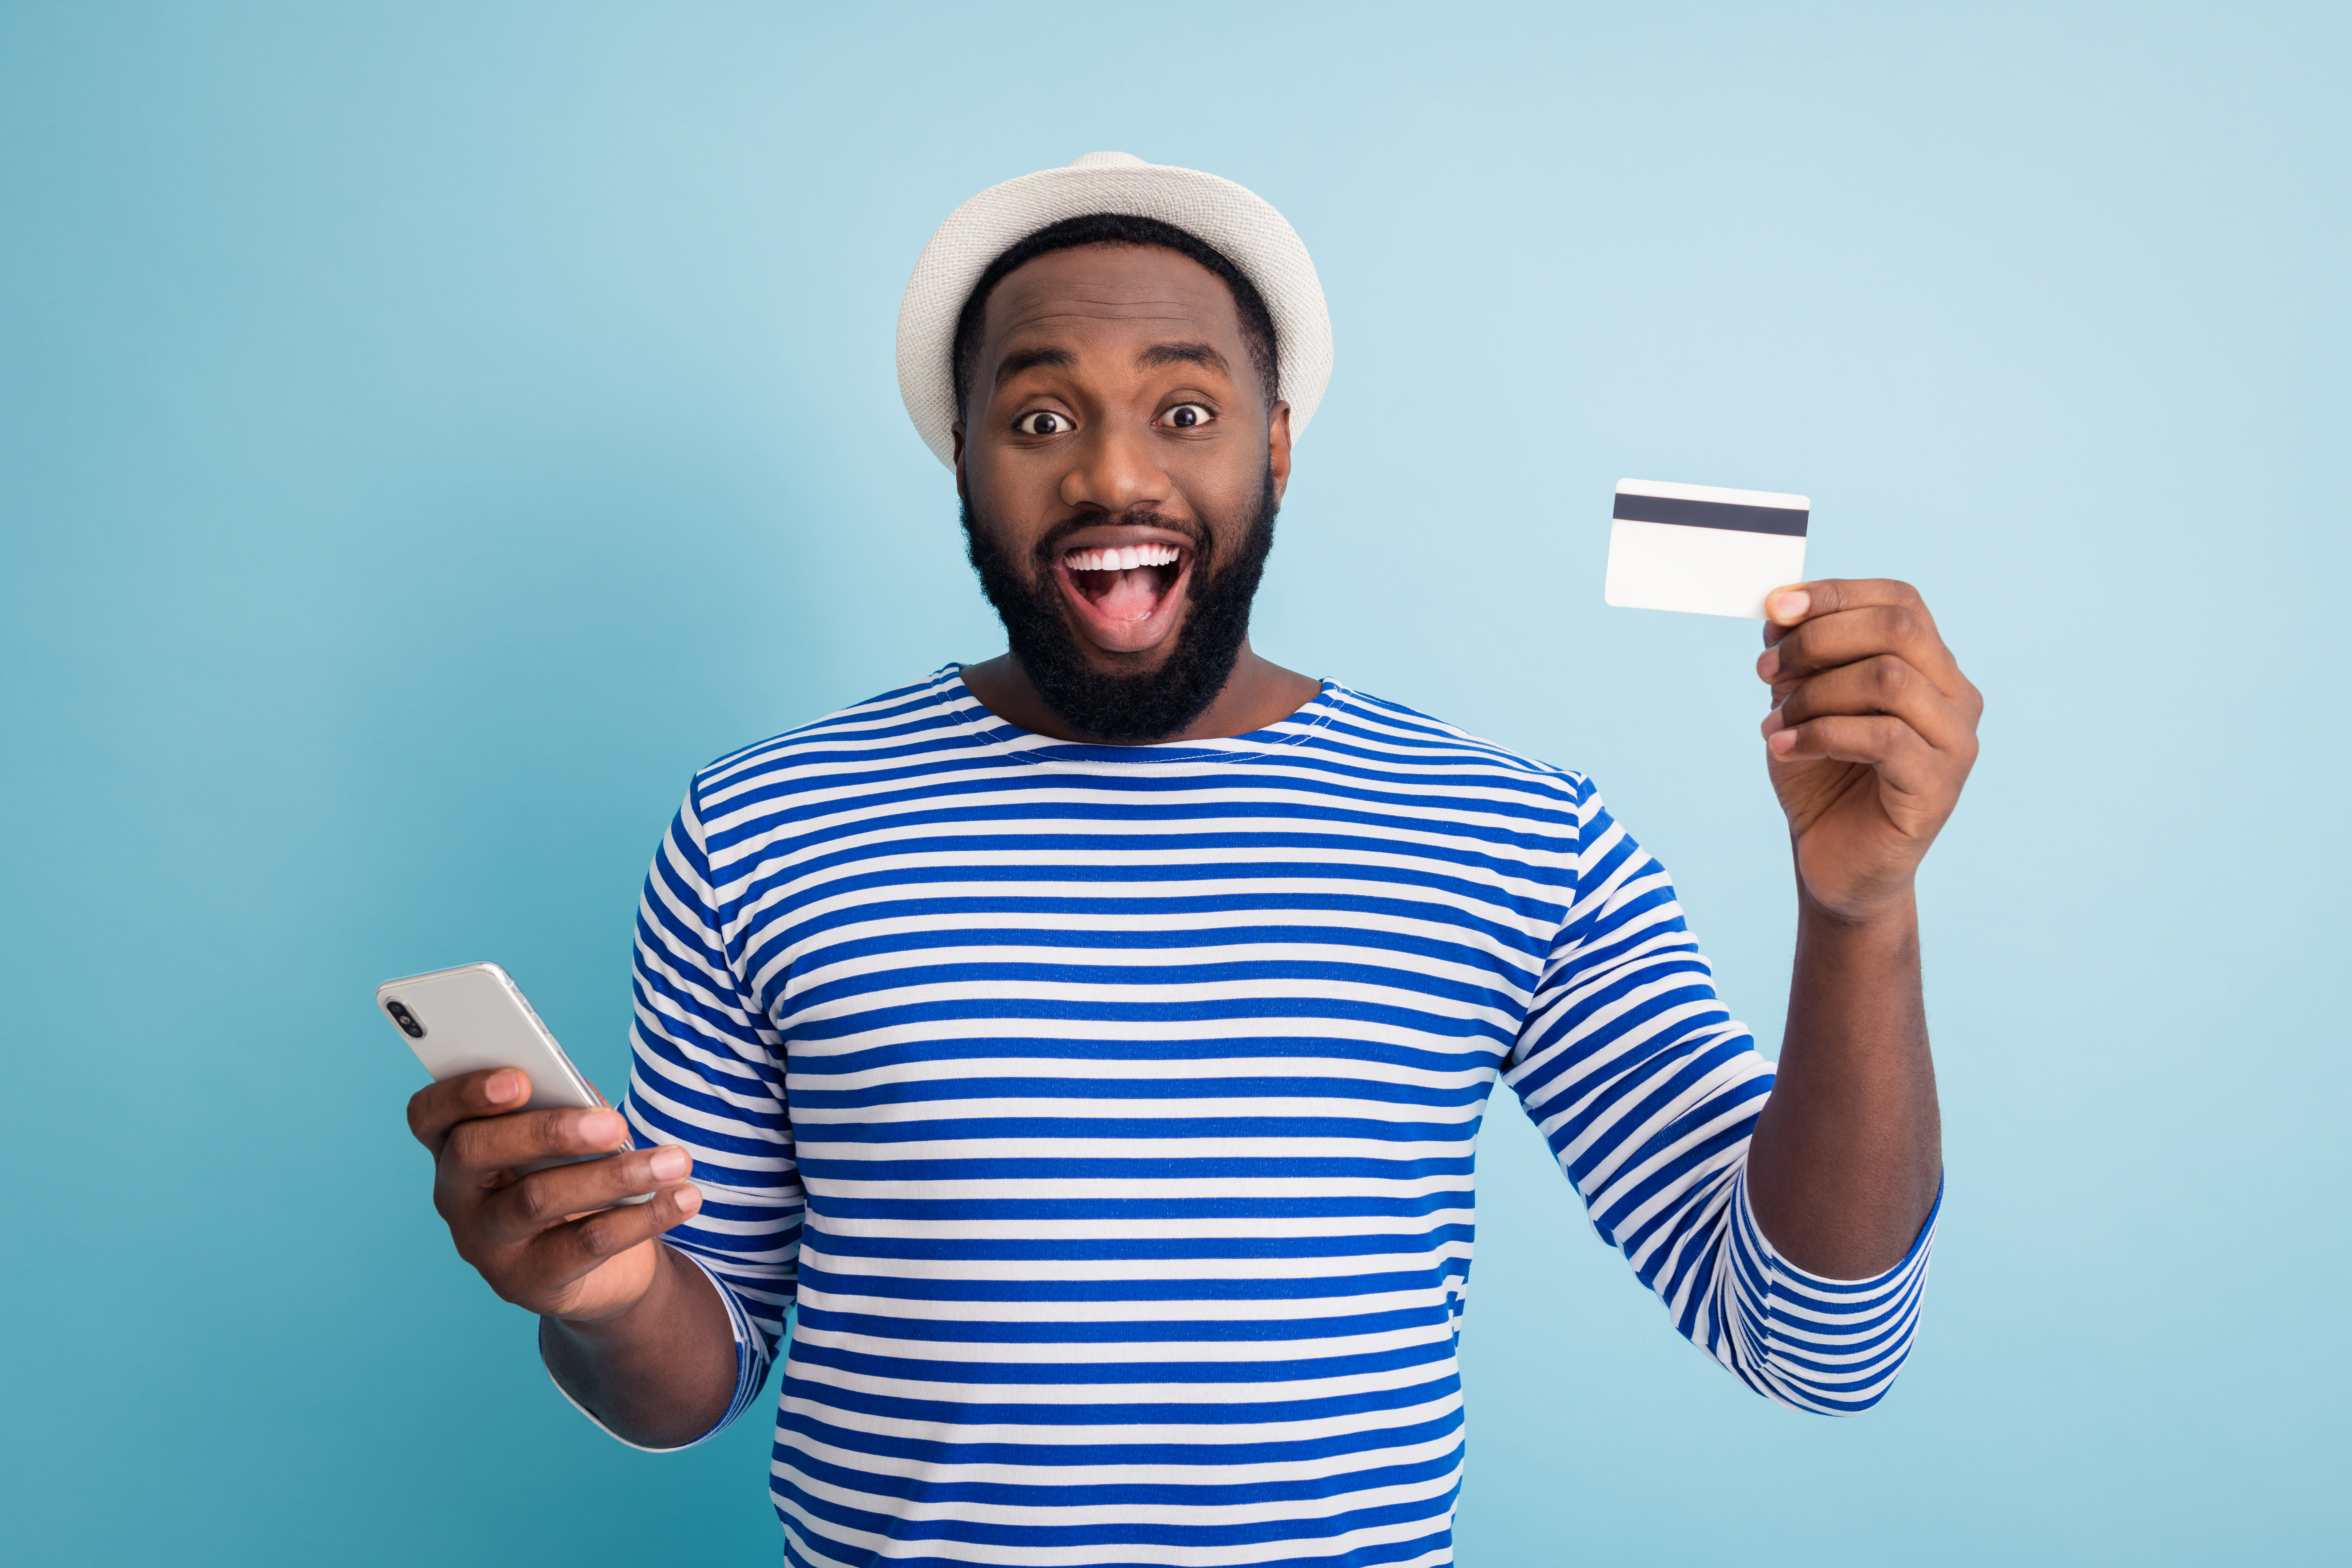 2021/photo-funny-dark-skin-guy-hold-telephone-app-browsing-making-online-purchase-use-cool-service-credit-card-wear-white-sun-cap-striped-sailor-shirt-isolated-blue-color-wall.jpeg